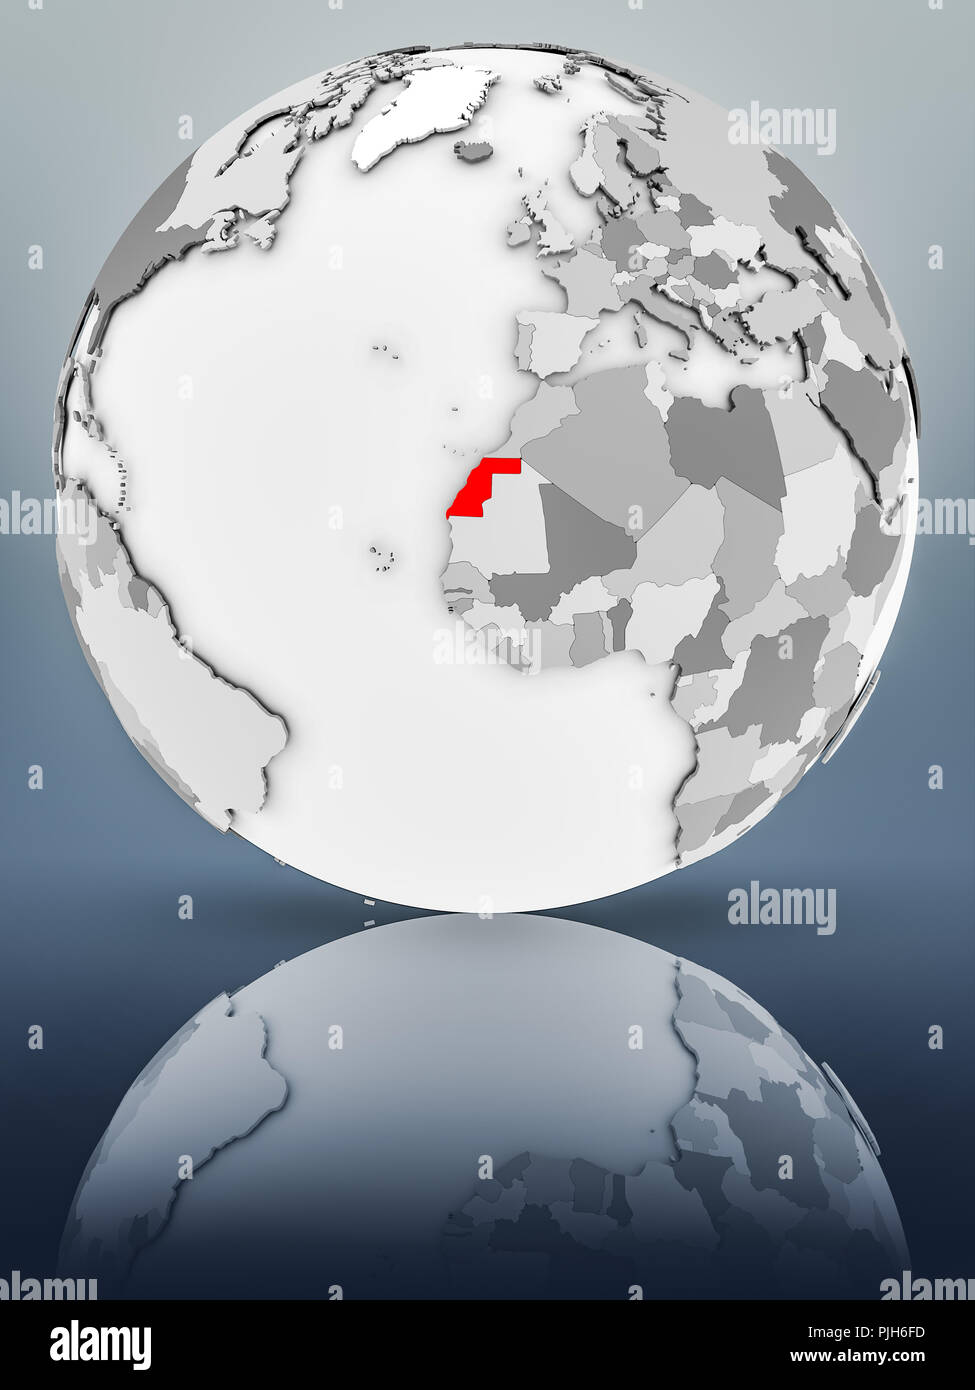 Western Sahara on simple gray globe on shiny surface. 3D illustration. - Stock Image